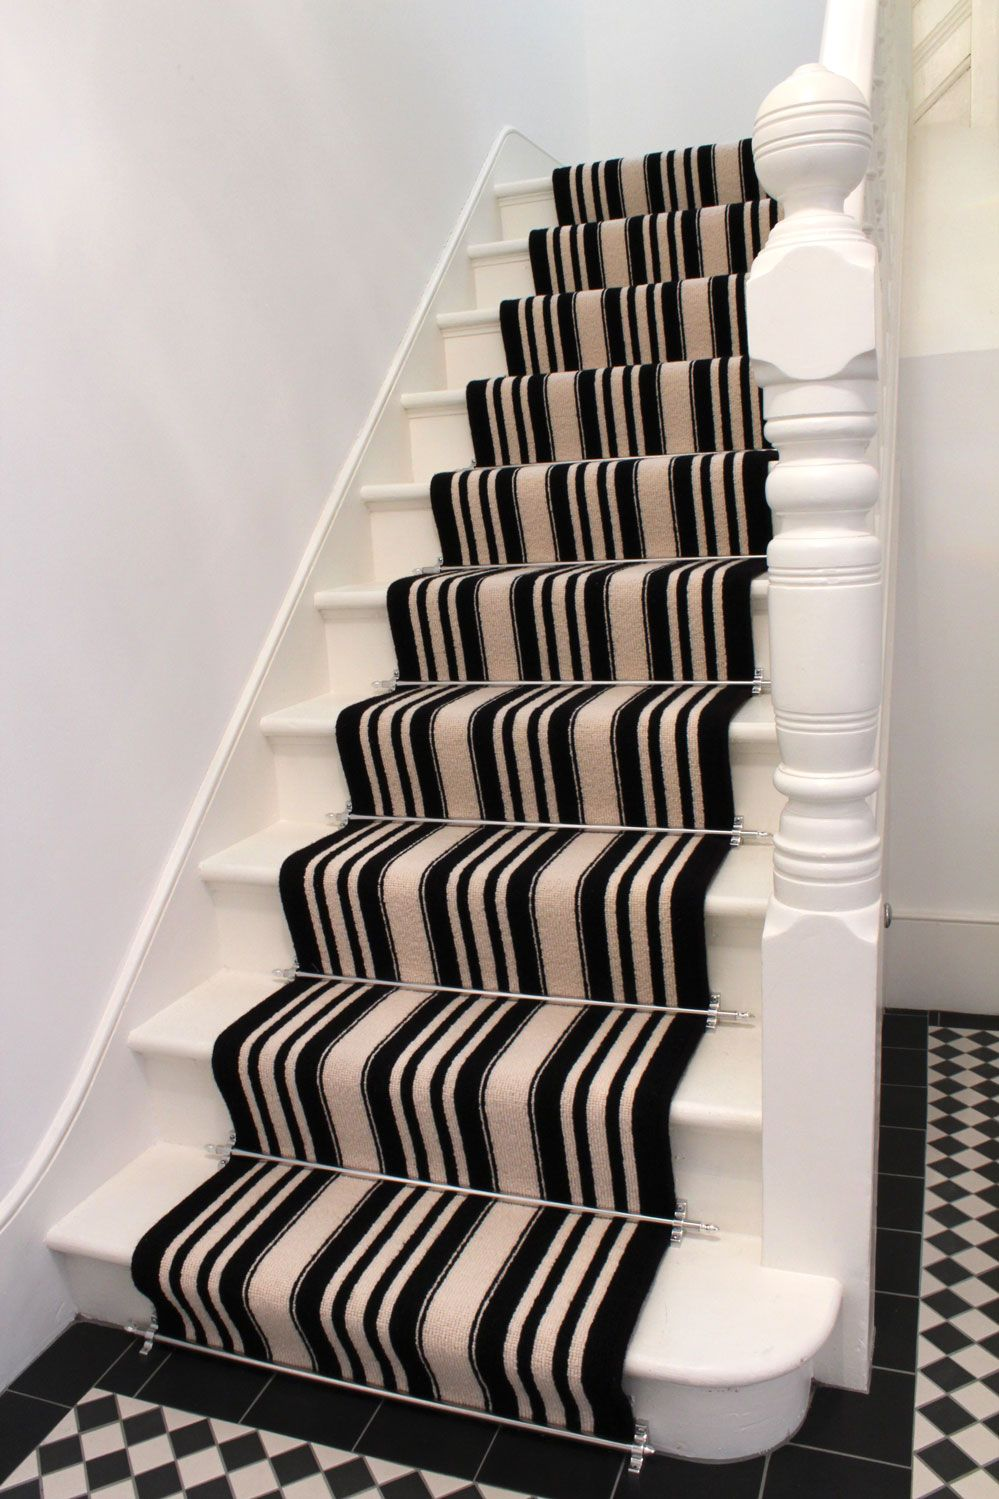 Best Striped Carpet Black White With Stair Rods House 400 x 300